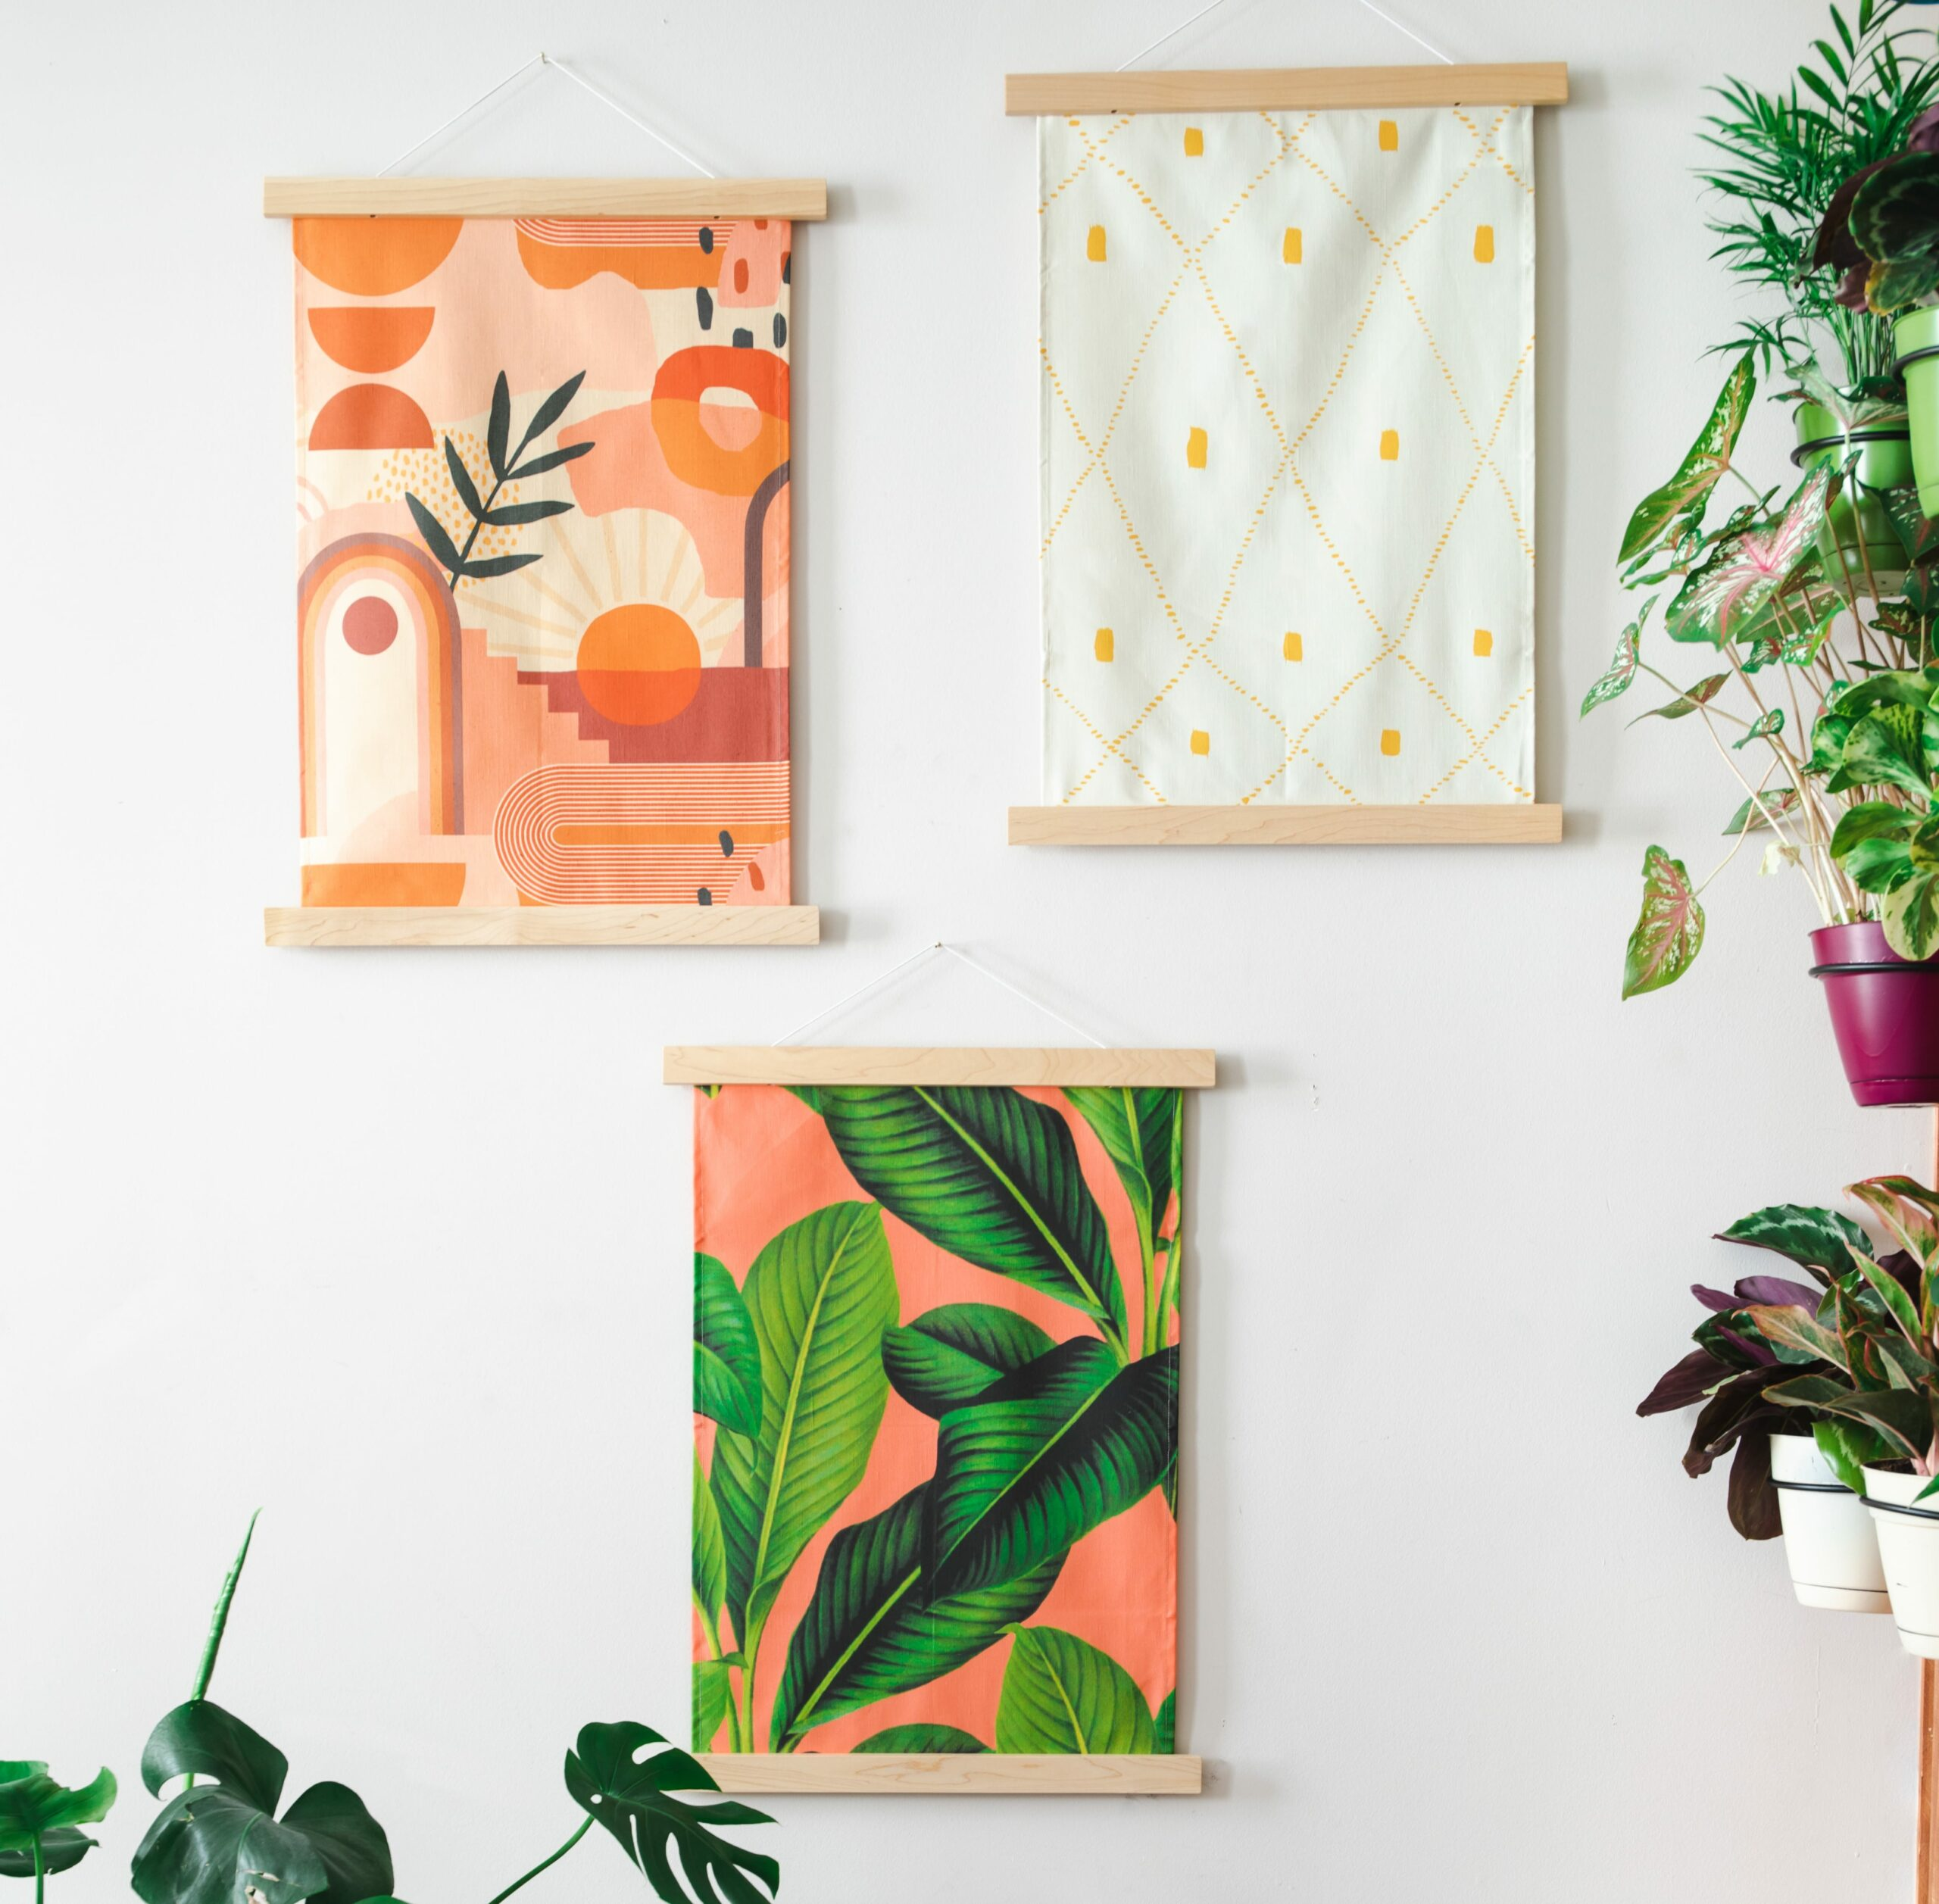 3 wall hangings with orange green and white designs